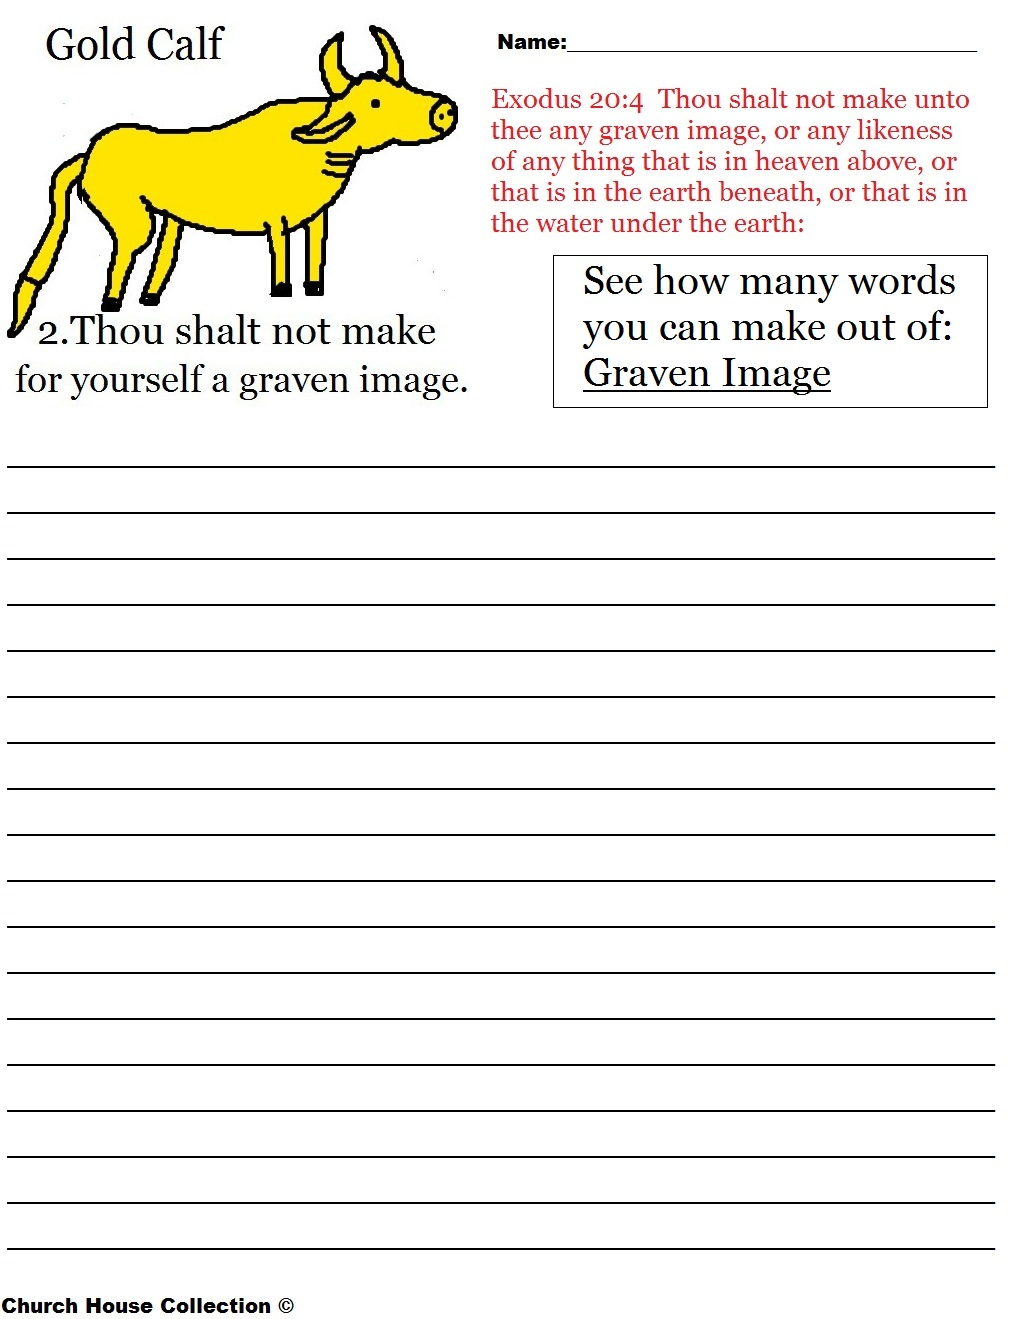 Worksheet School Work For Kids worksheet school work for kids mikyu free thou shalt not make yourself a graven image word in